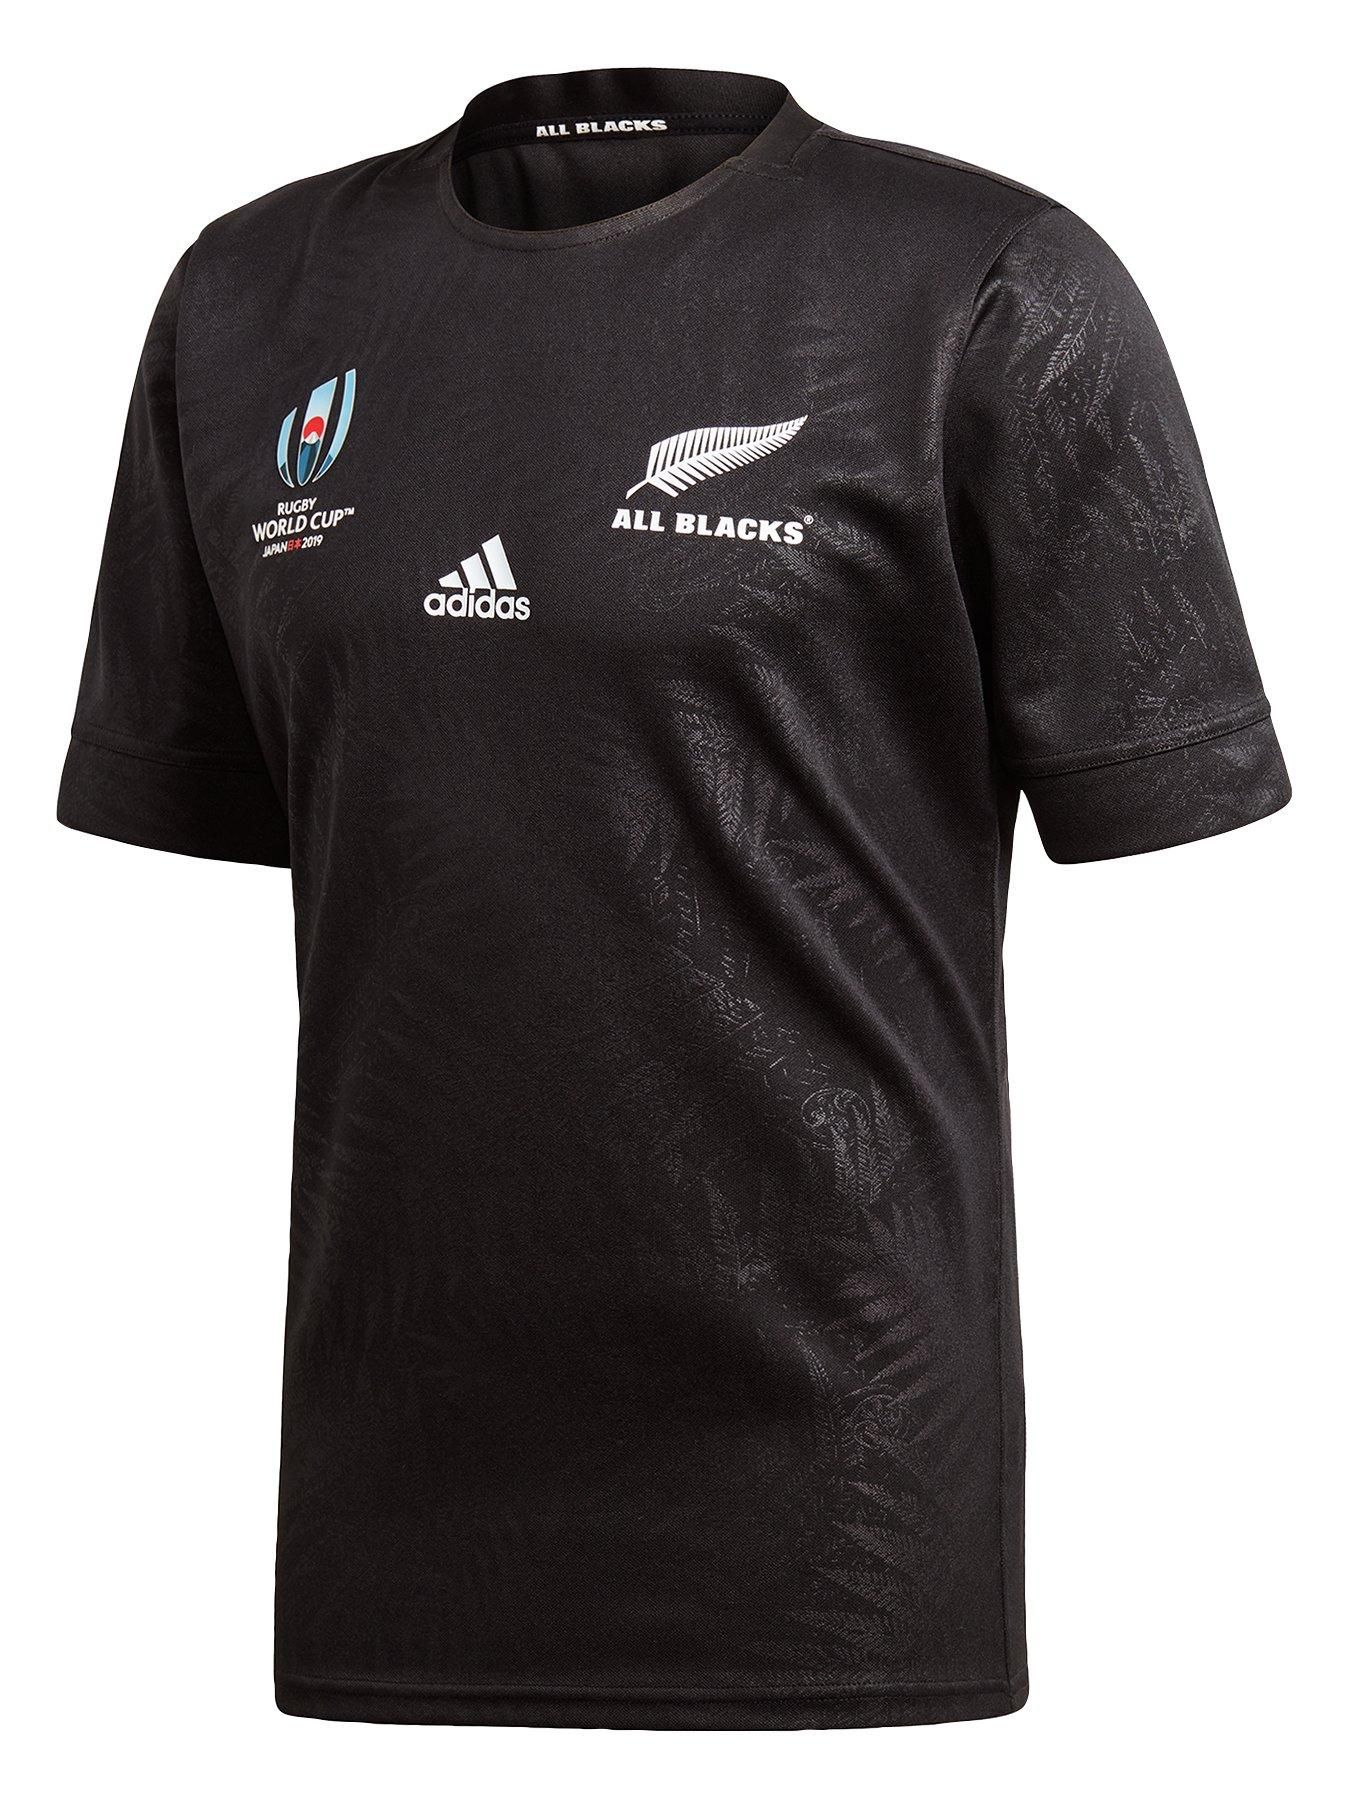 Adidas All Blacks Rugby World Cup Home Jersey Black